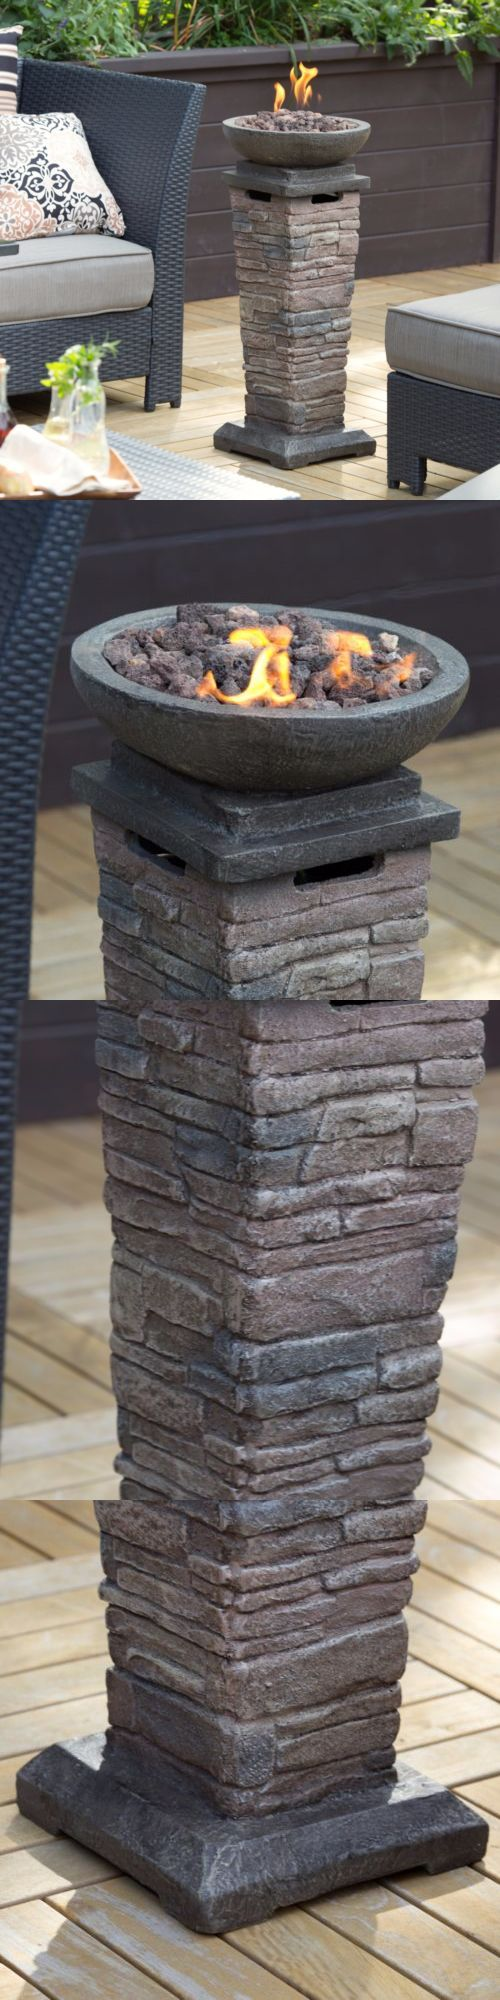 Fire Pits and Chimineas 85916: Patio Fire Pit Propane Gas Heater Burner Column Firepit Resin Stone Deck New -> BUY IT NOW ONLY: $151.94 on eBay!